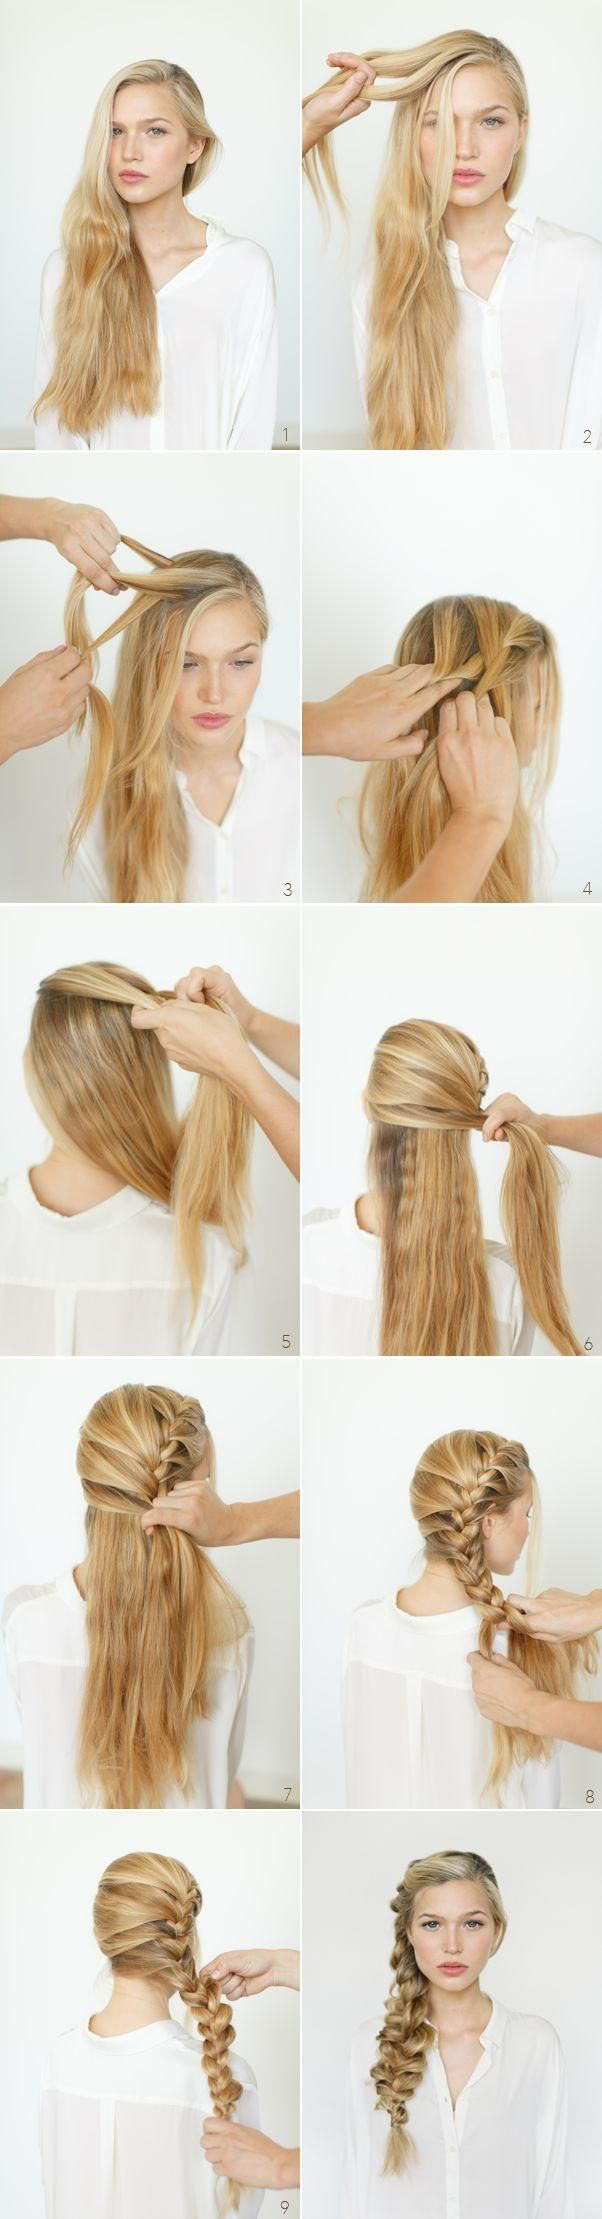 Fashion style Step hairstyle by step braid for lady